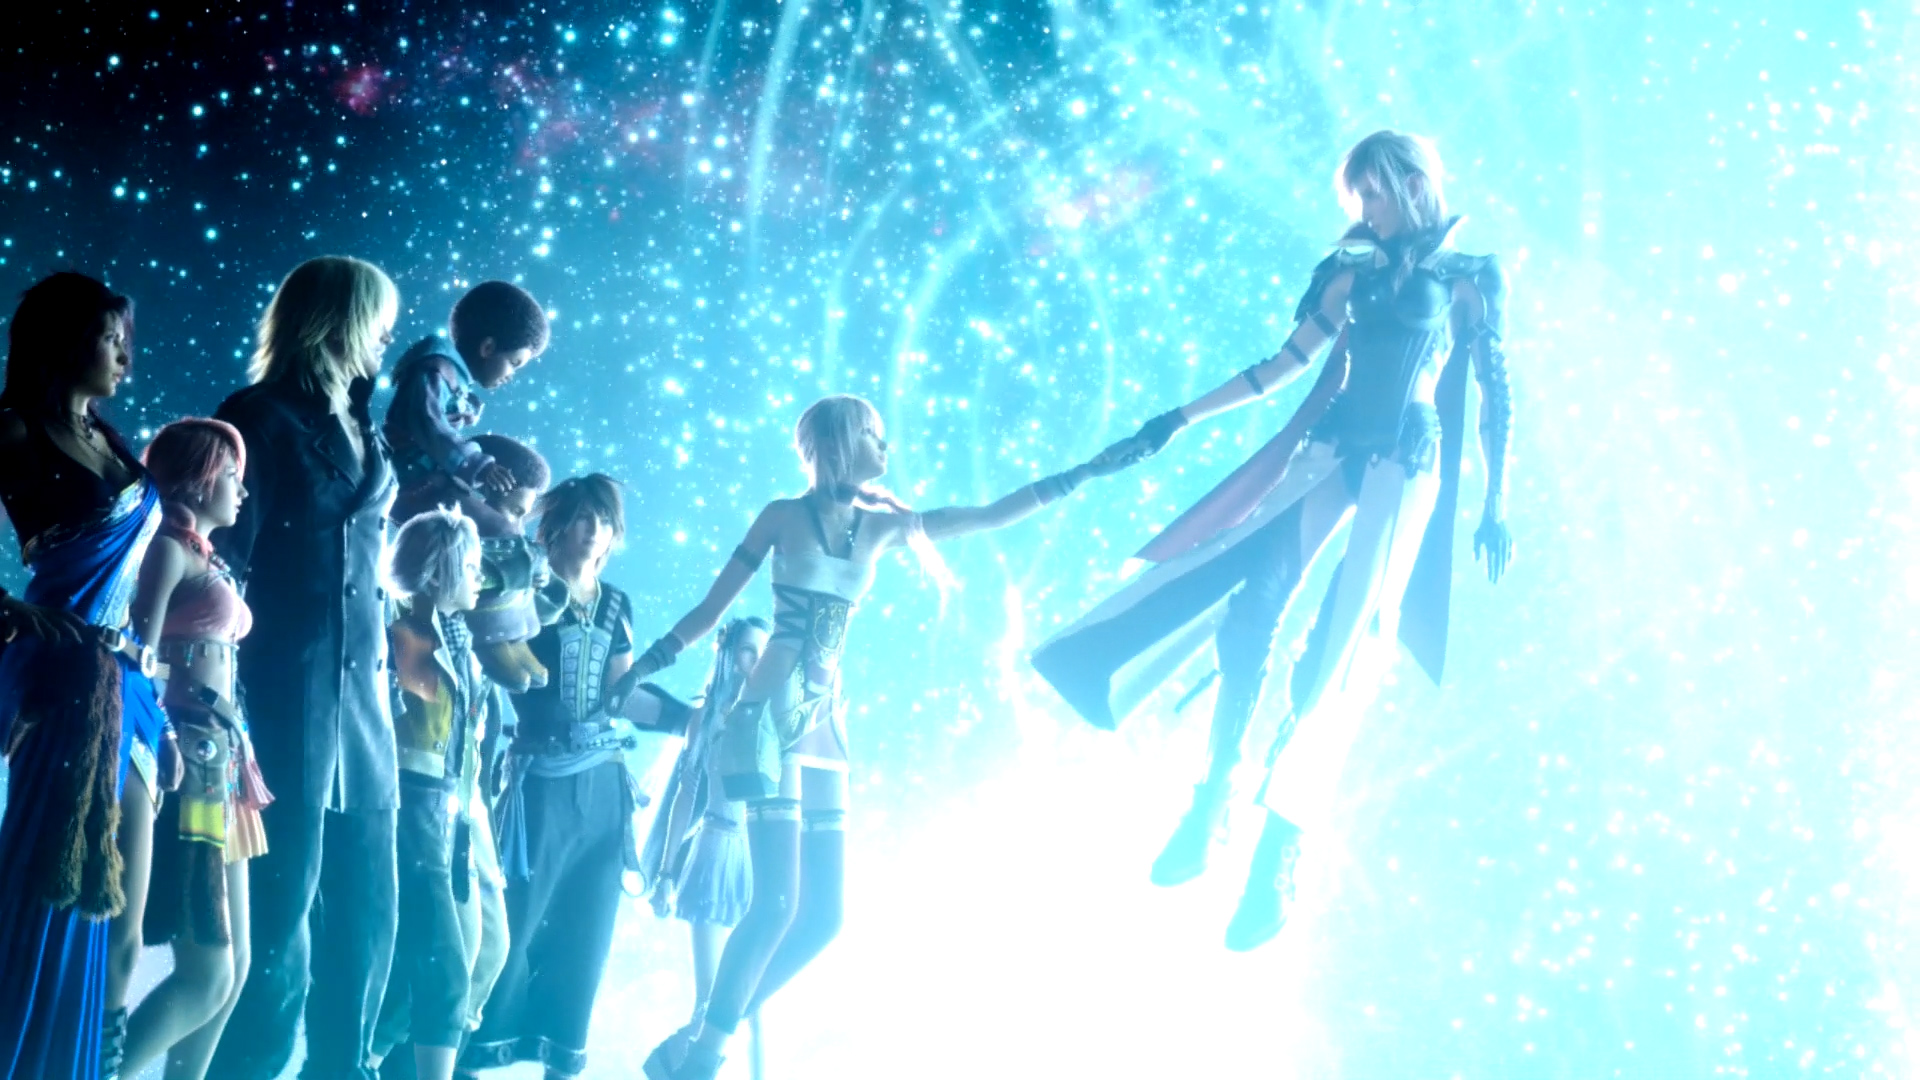 final fantasy 13 lightning returns wallpaper 1920x1080